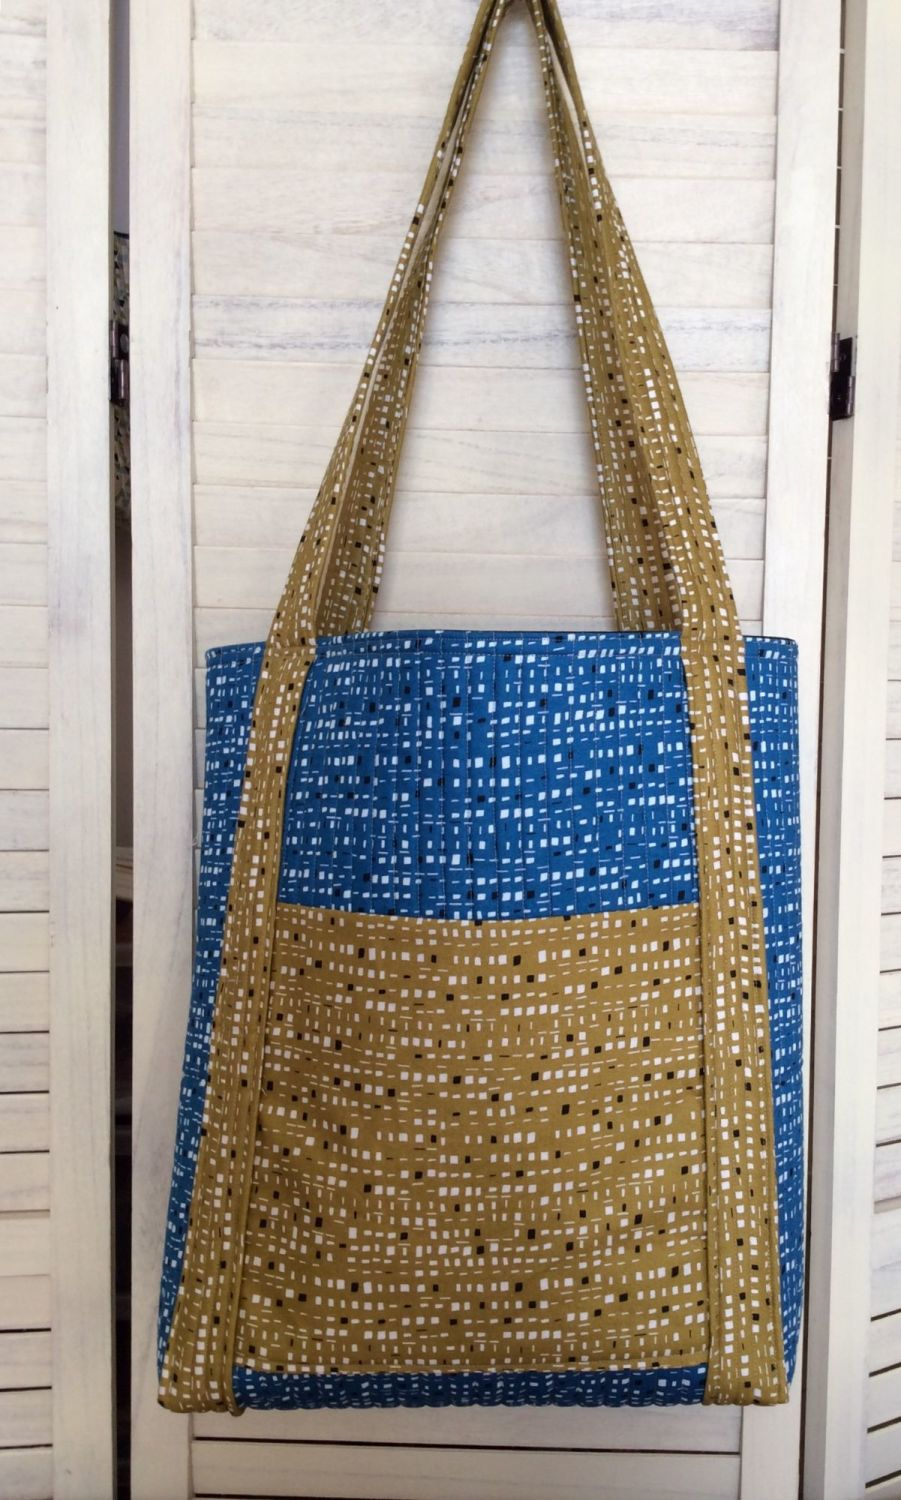 New Horizons Quilted Tote Bag With Pockets